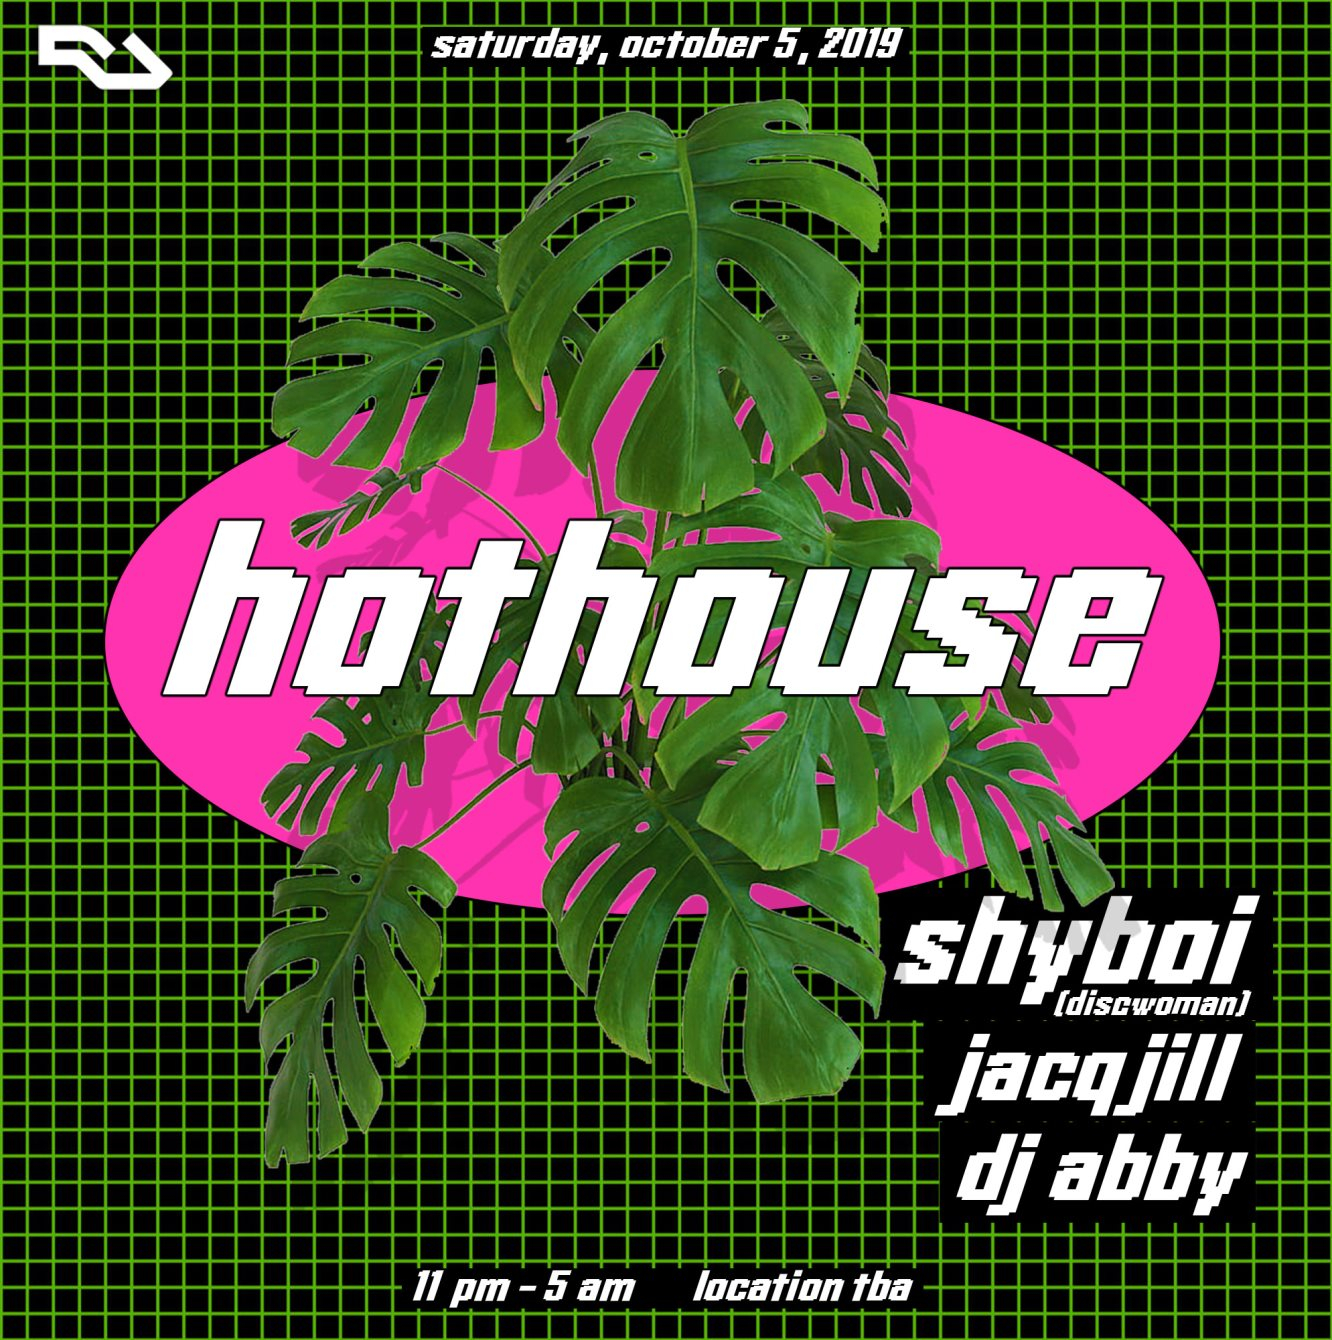 hothouse - Flyer front